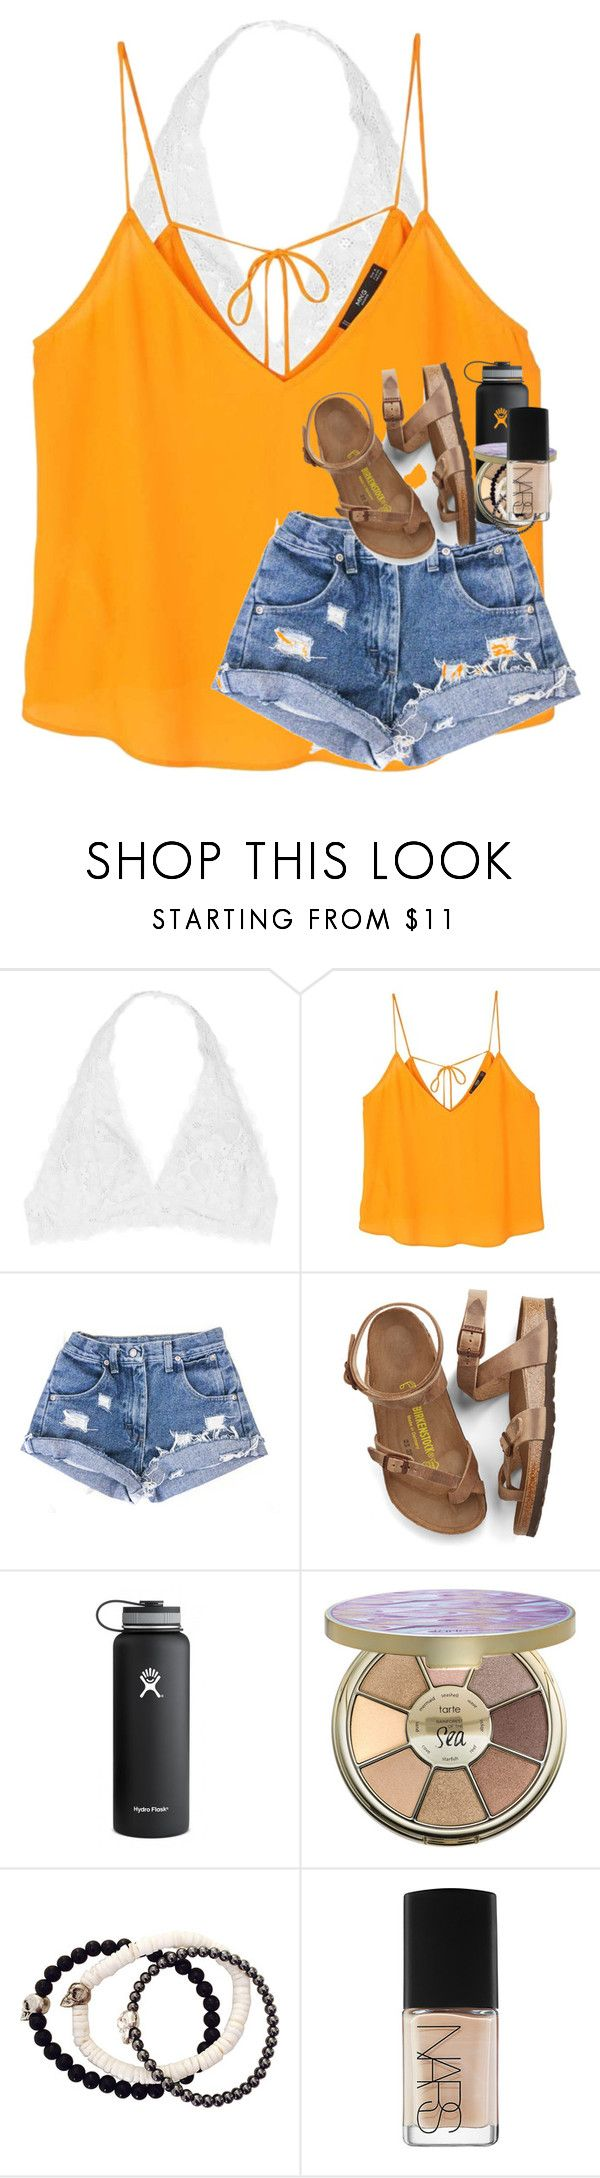 """""""you have this incredible way of making my heart happy"""" by kyliegrace ❤ liked on Polyvore featuring Youmita, MANGO, Birkenstock, Hydro Flask, tarte, Duchess of Malfi and NARS Cosmetics"""